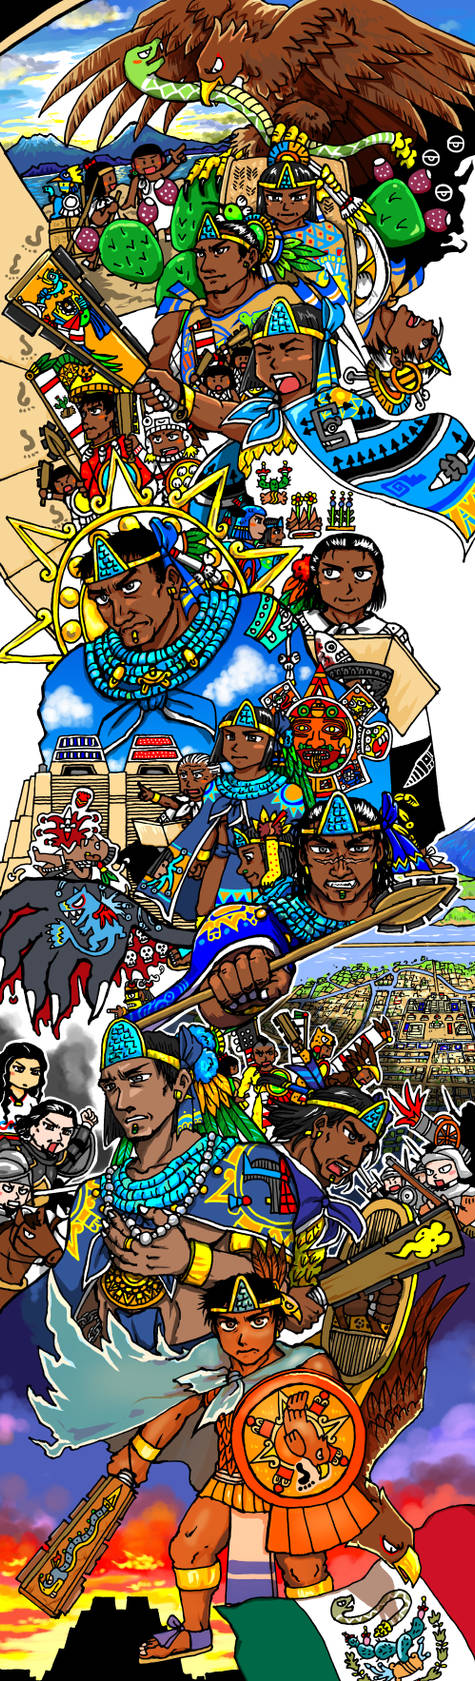 Rulers of Mexico-Tenochtitlan by nosuku-k